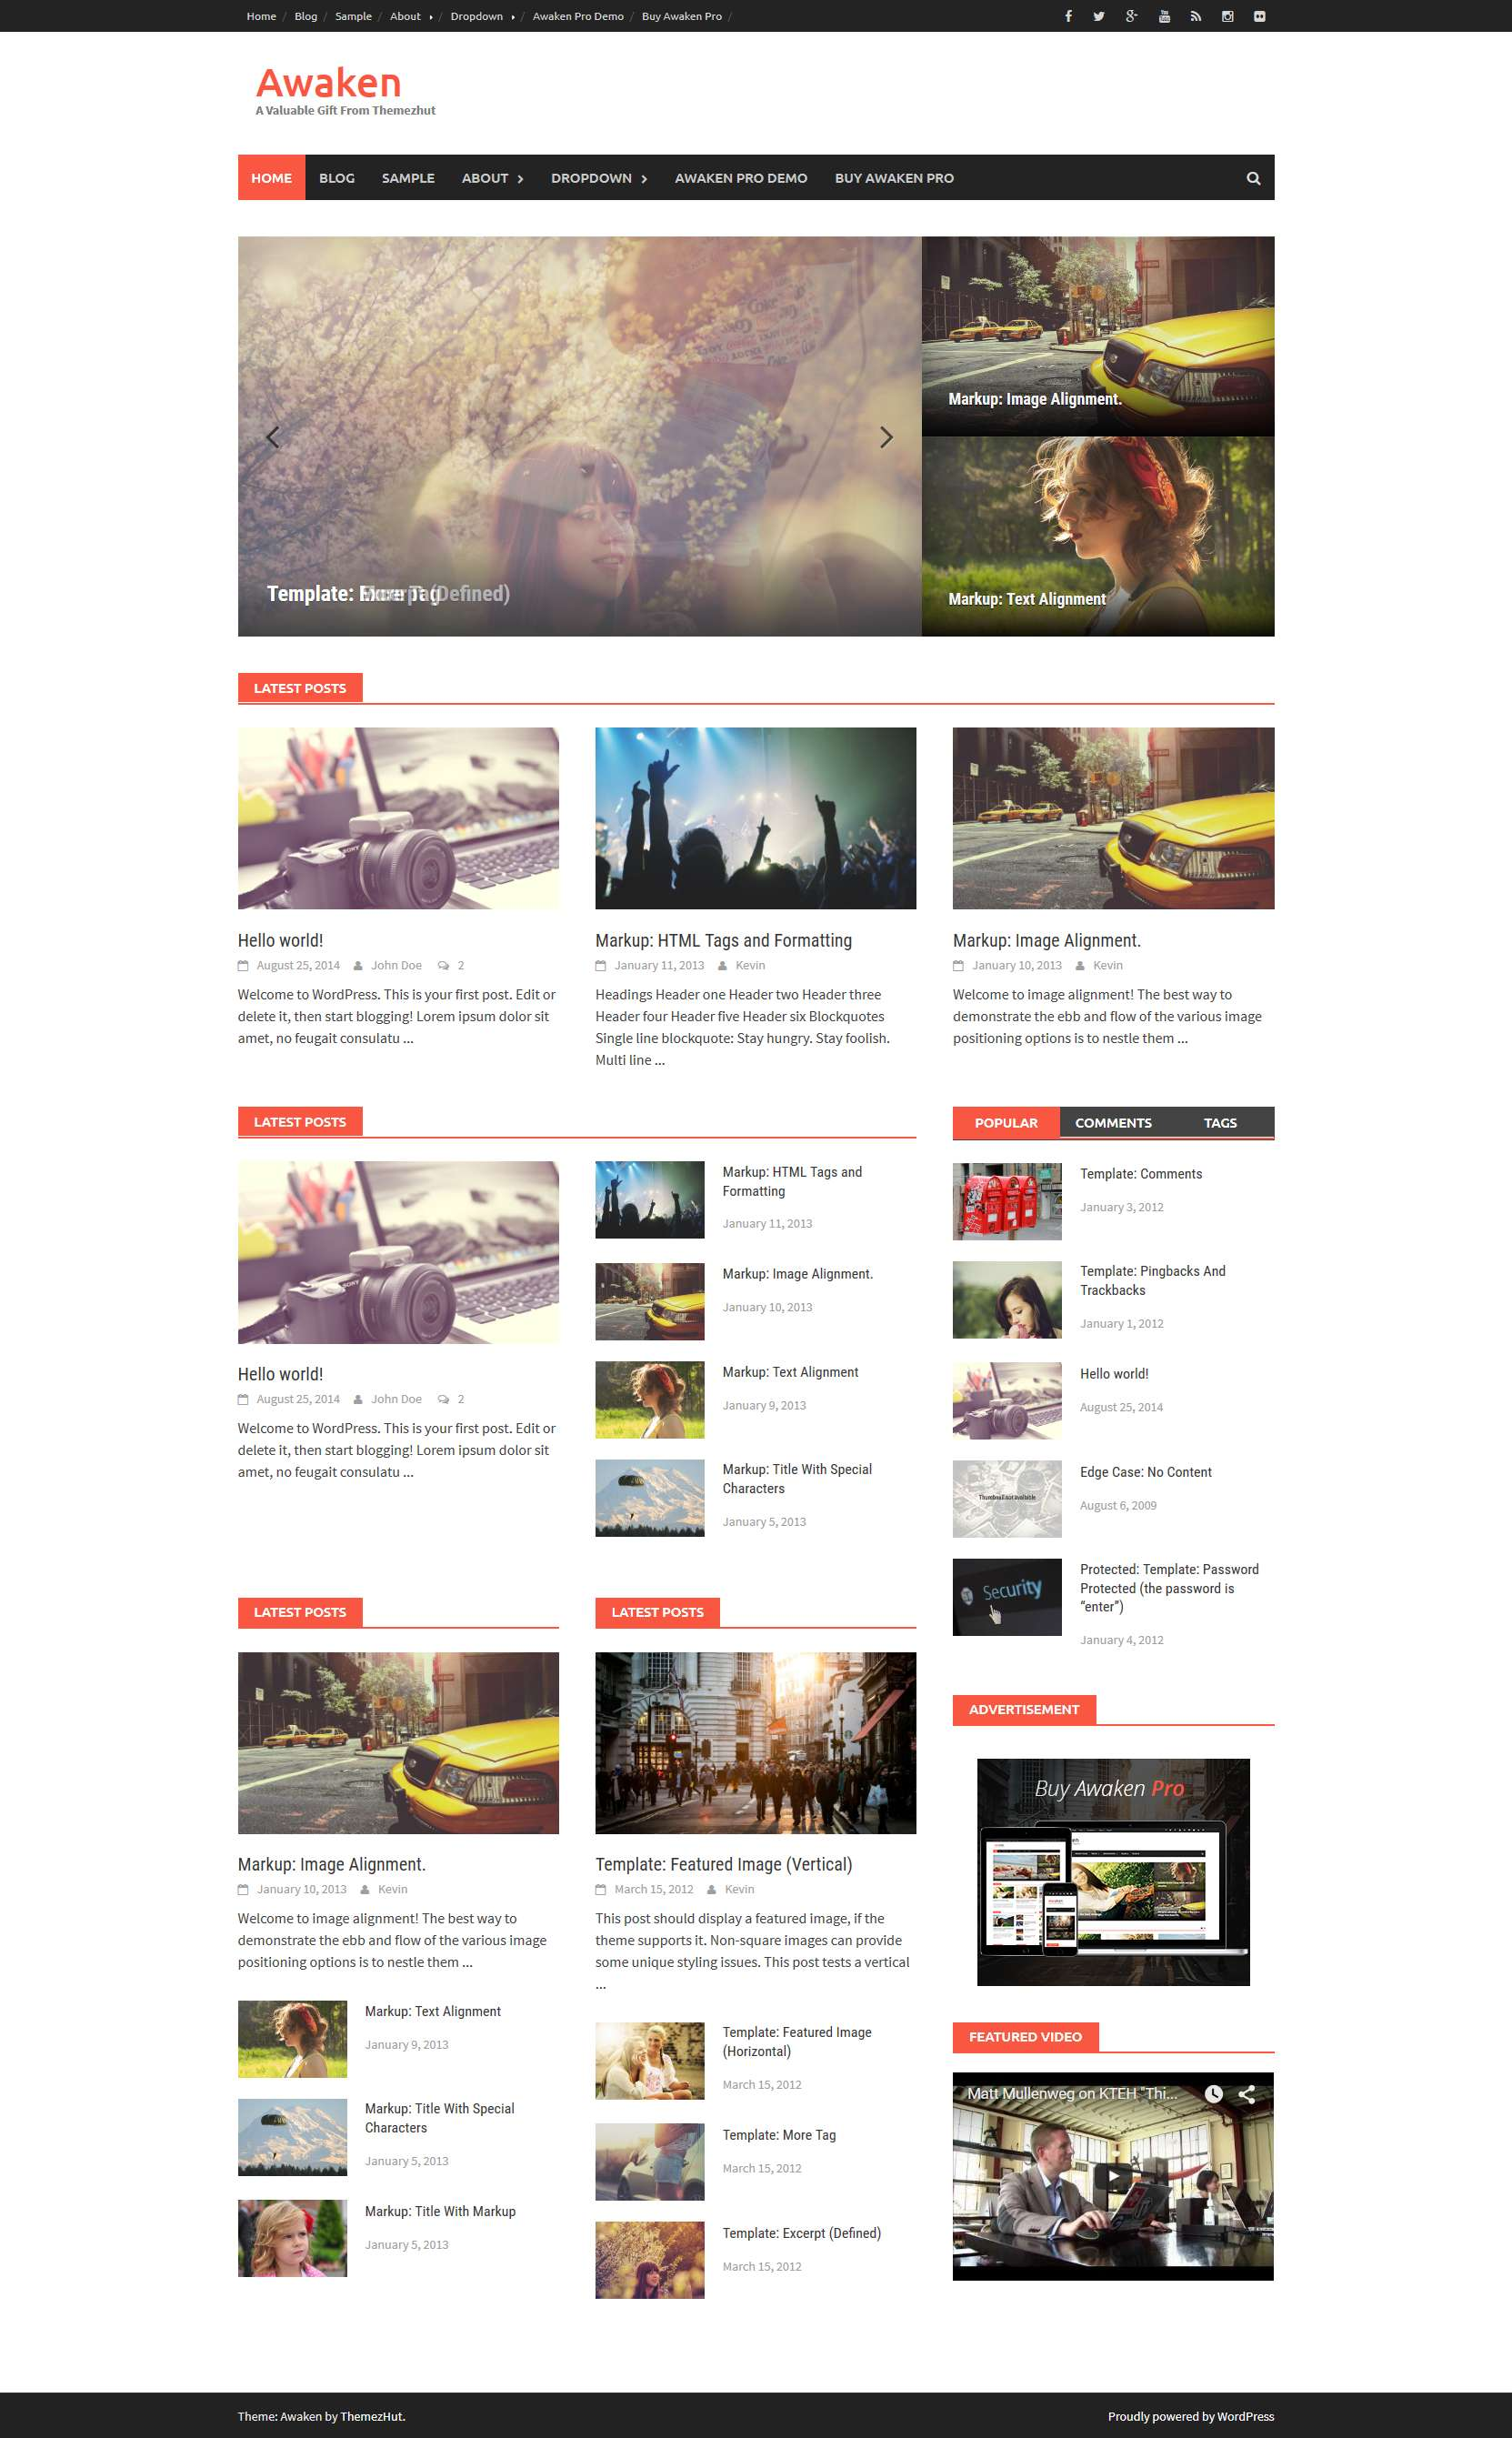 Awaken - Free WordPress Theme